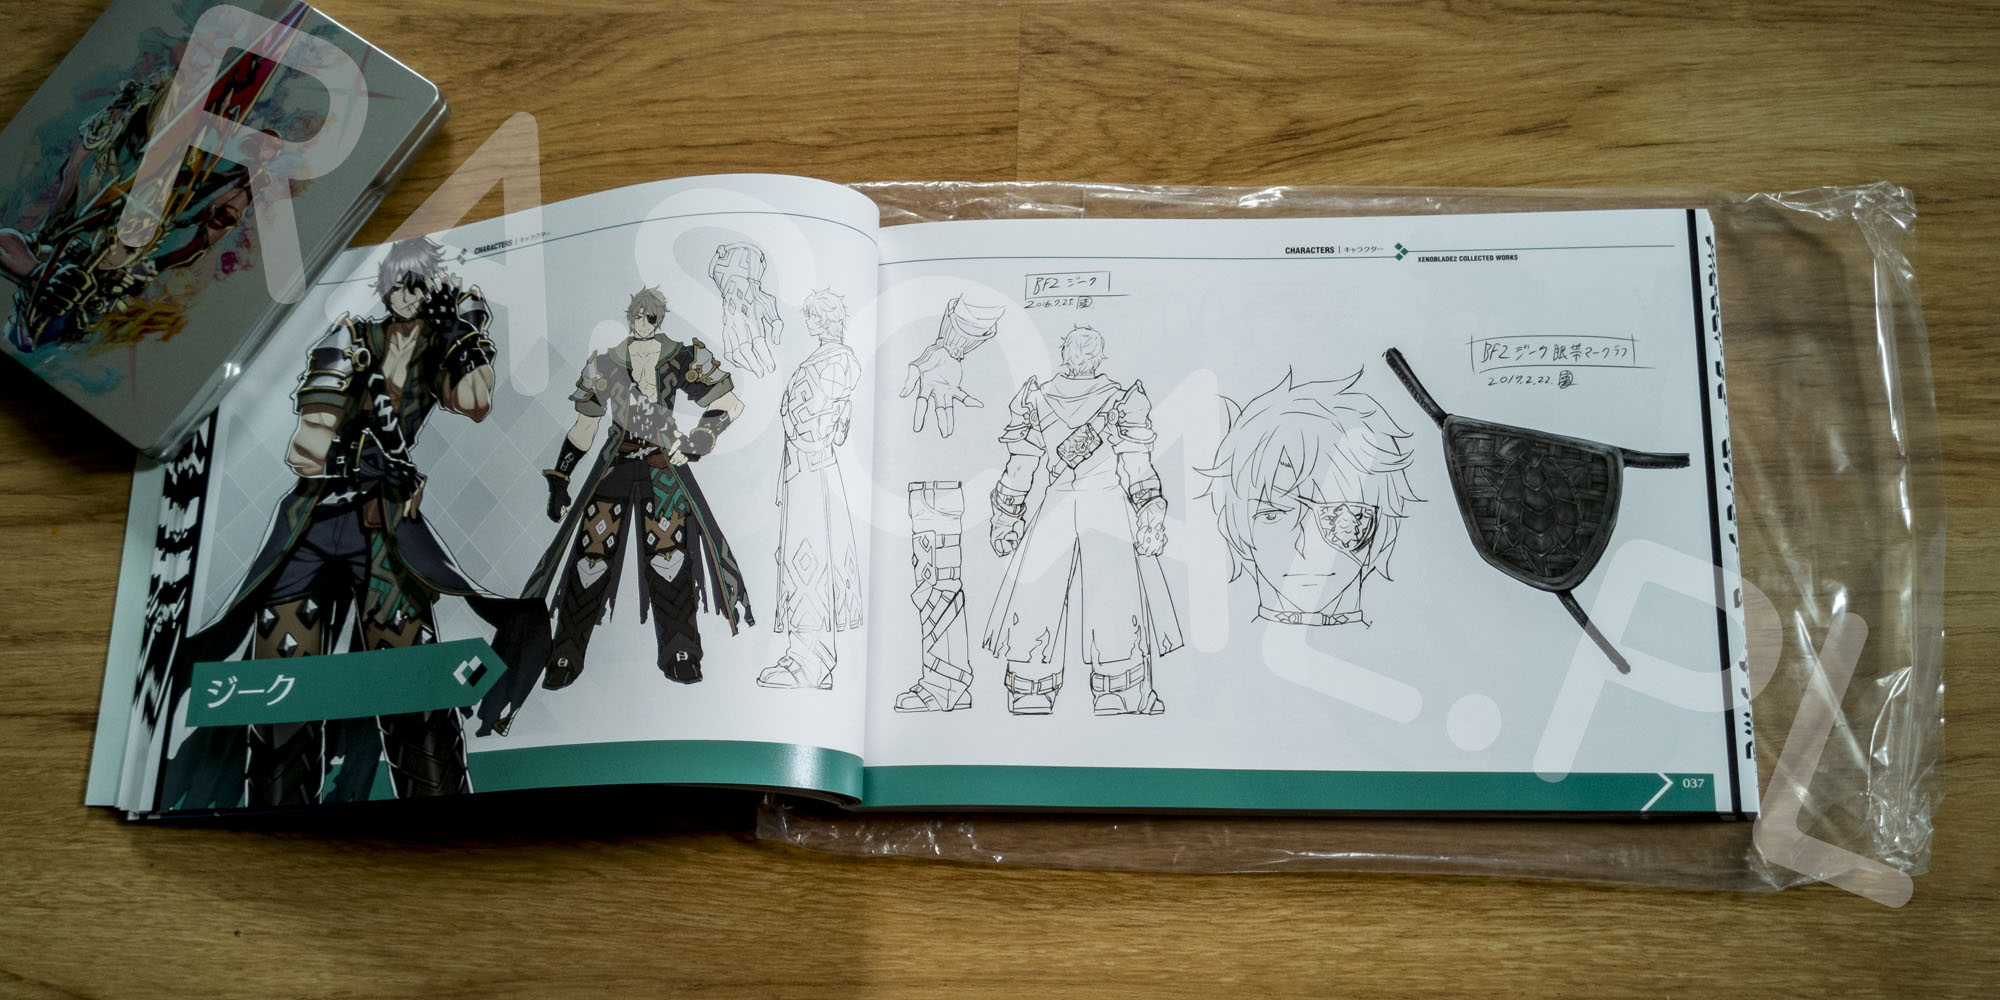 Xenoblade Chronicles 2 Collectors Edition Artbook - 08 - Jiiku